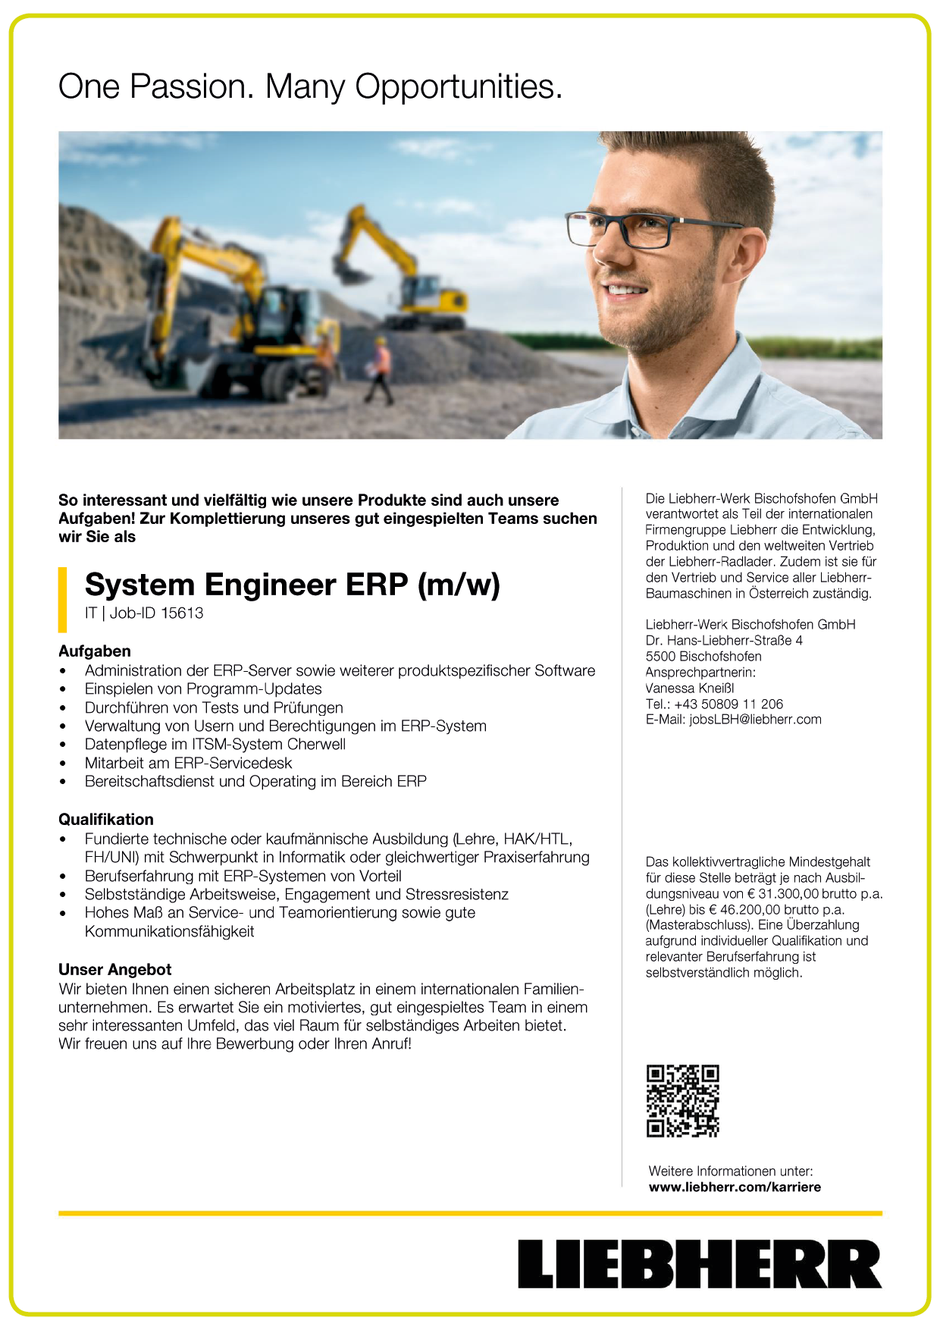 Software Developer Jobs - System Engineer ERP - Liebherr - Bischofshofen - Salzburg